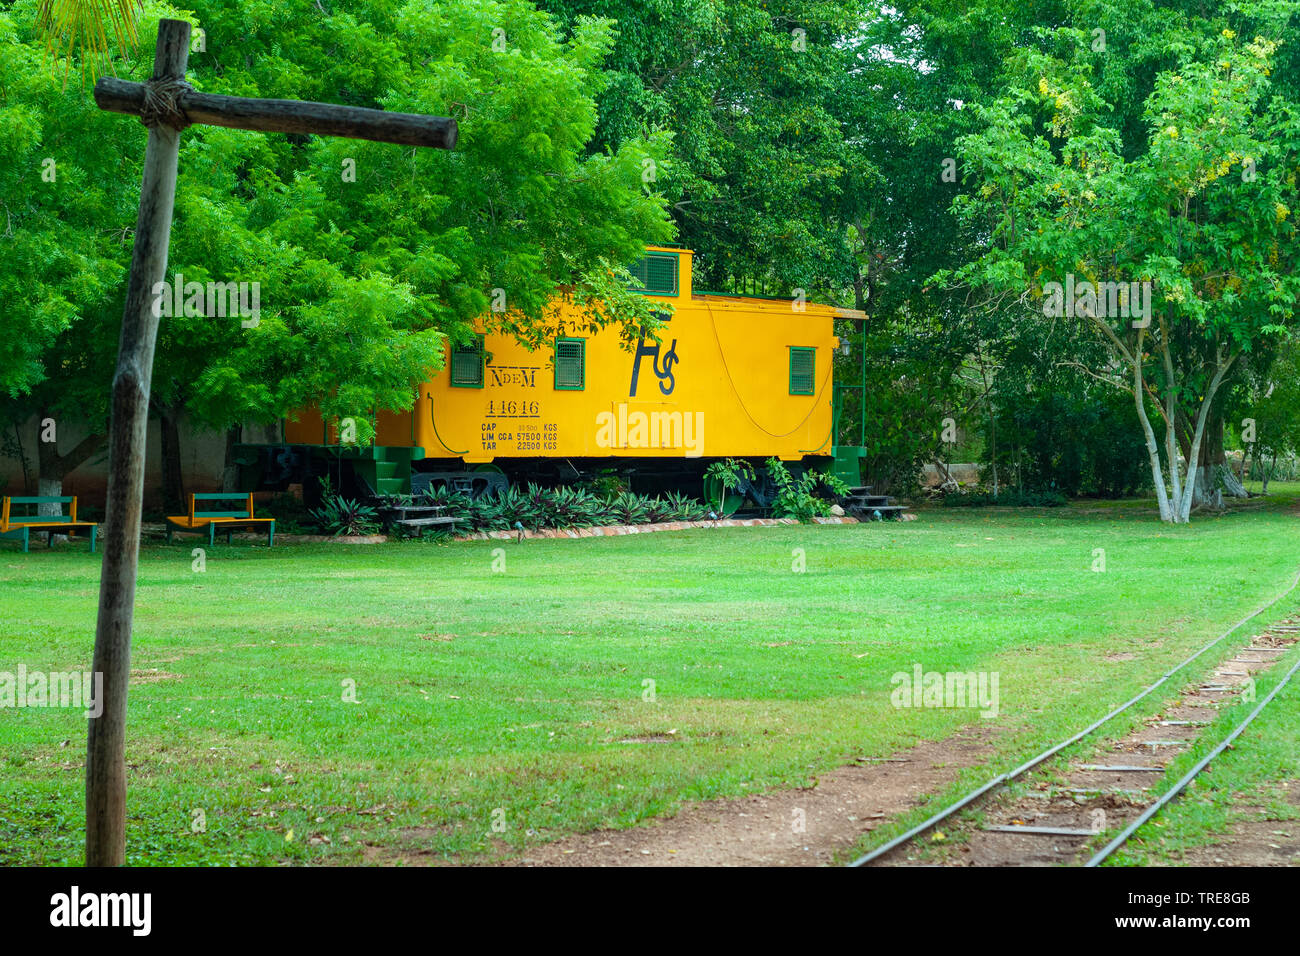 Old train for the transport of Agave leaves, taken in the Tecoh plantations, in the Yucatan peninsula - Stock Image